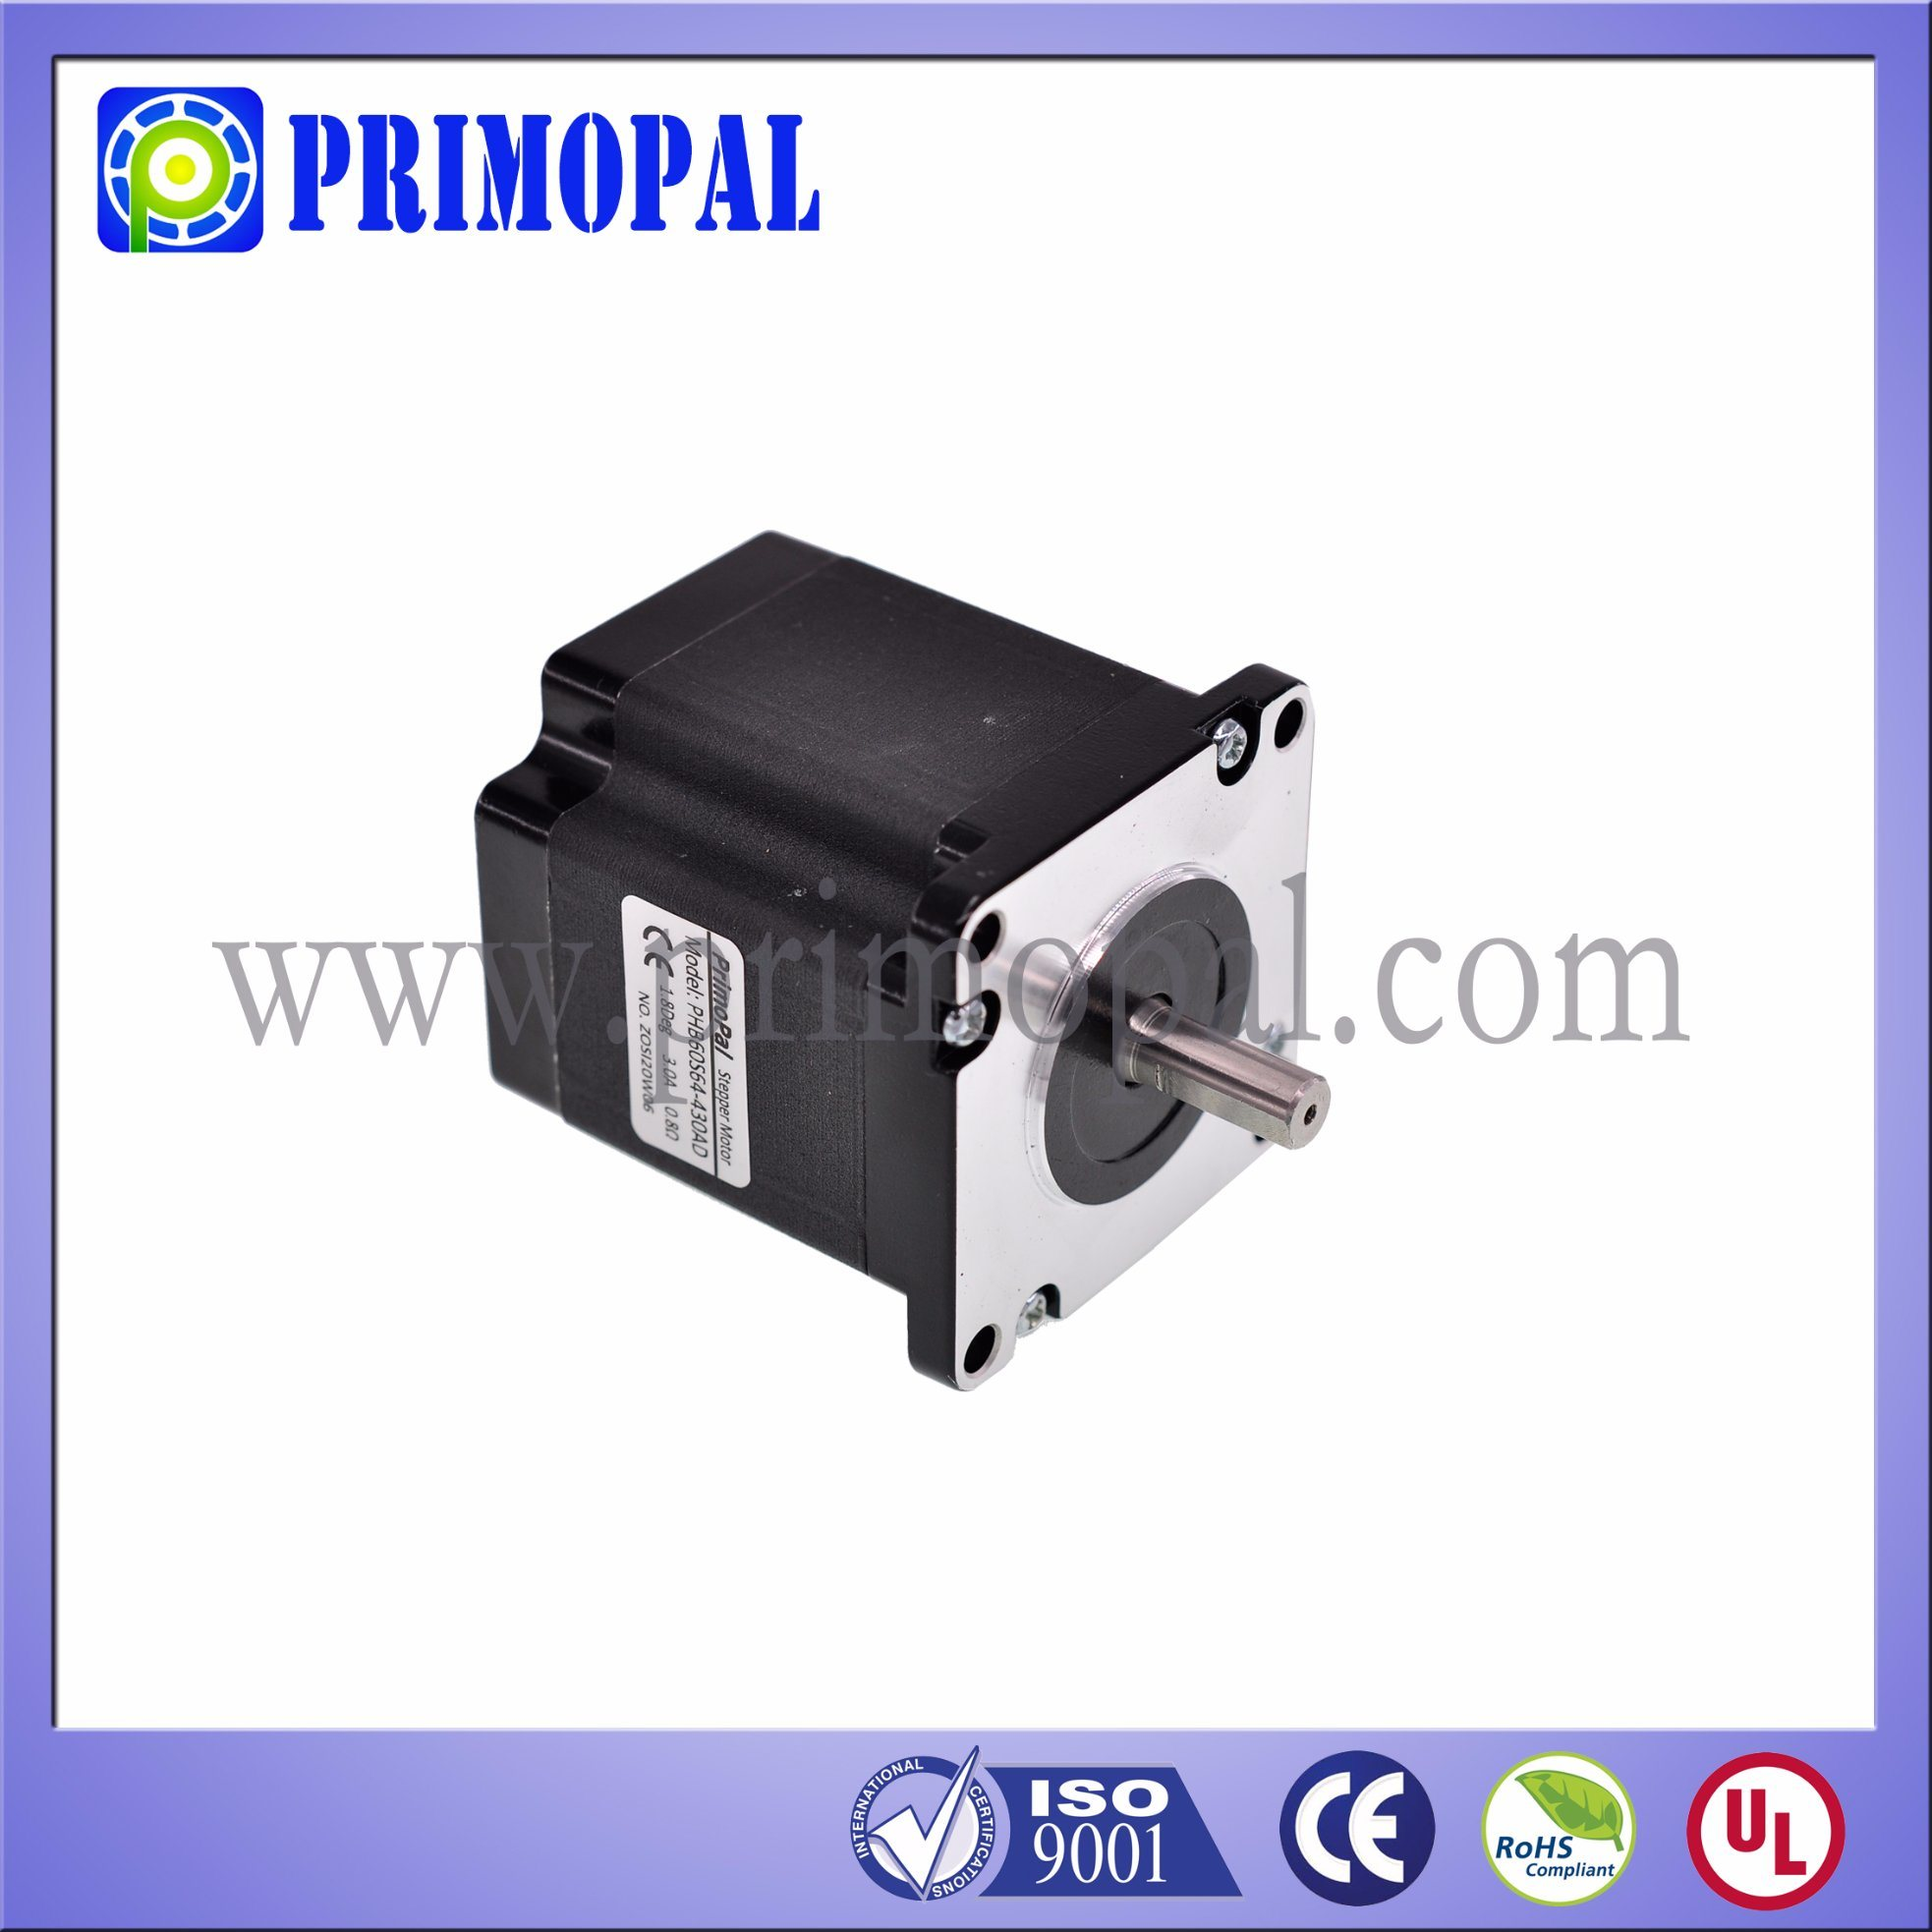 1.8 Step Angle NEMA 24 Square Stepper Motor for Industrial Printer